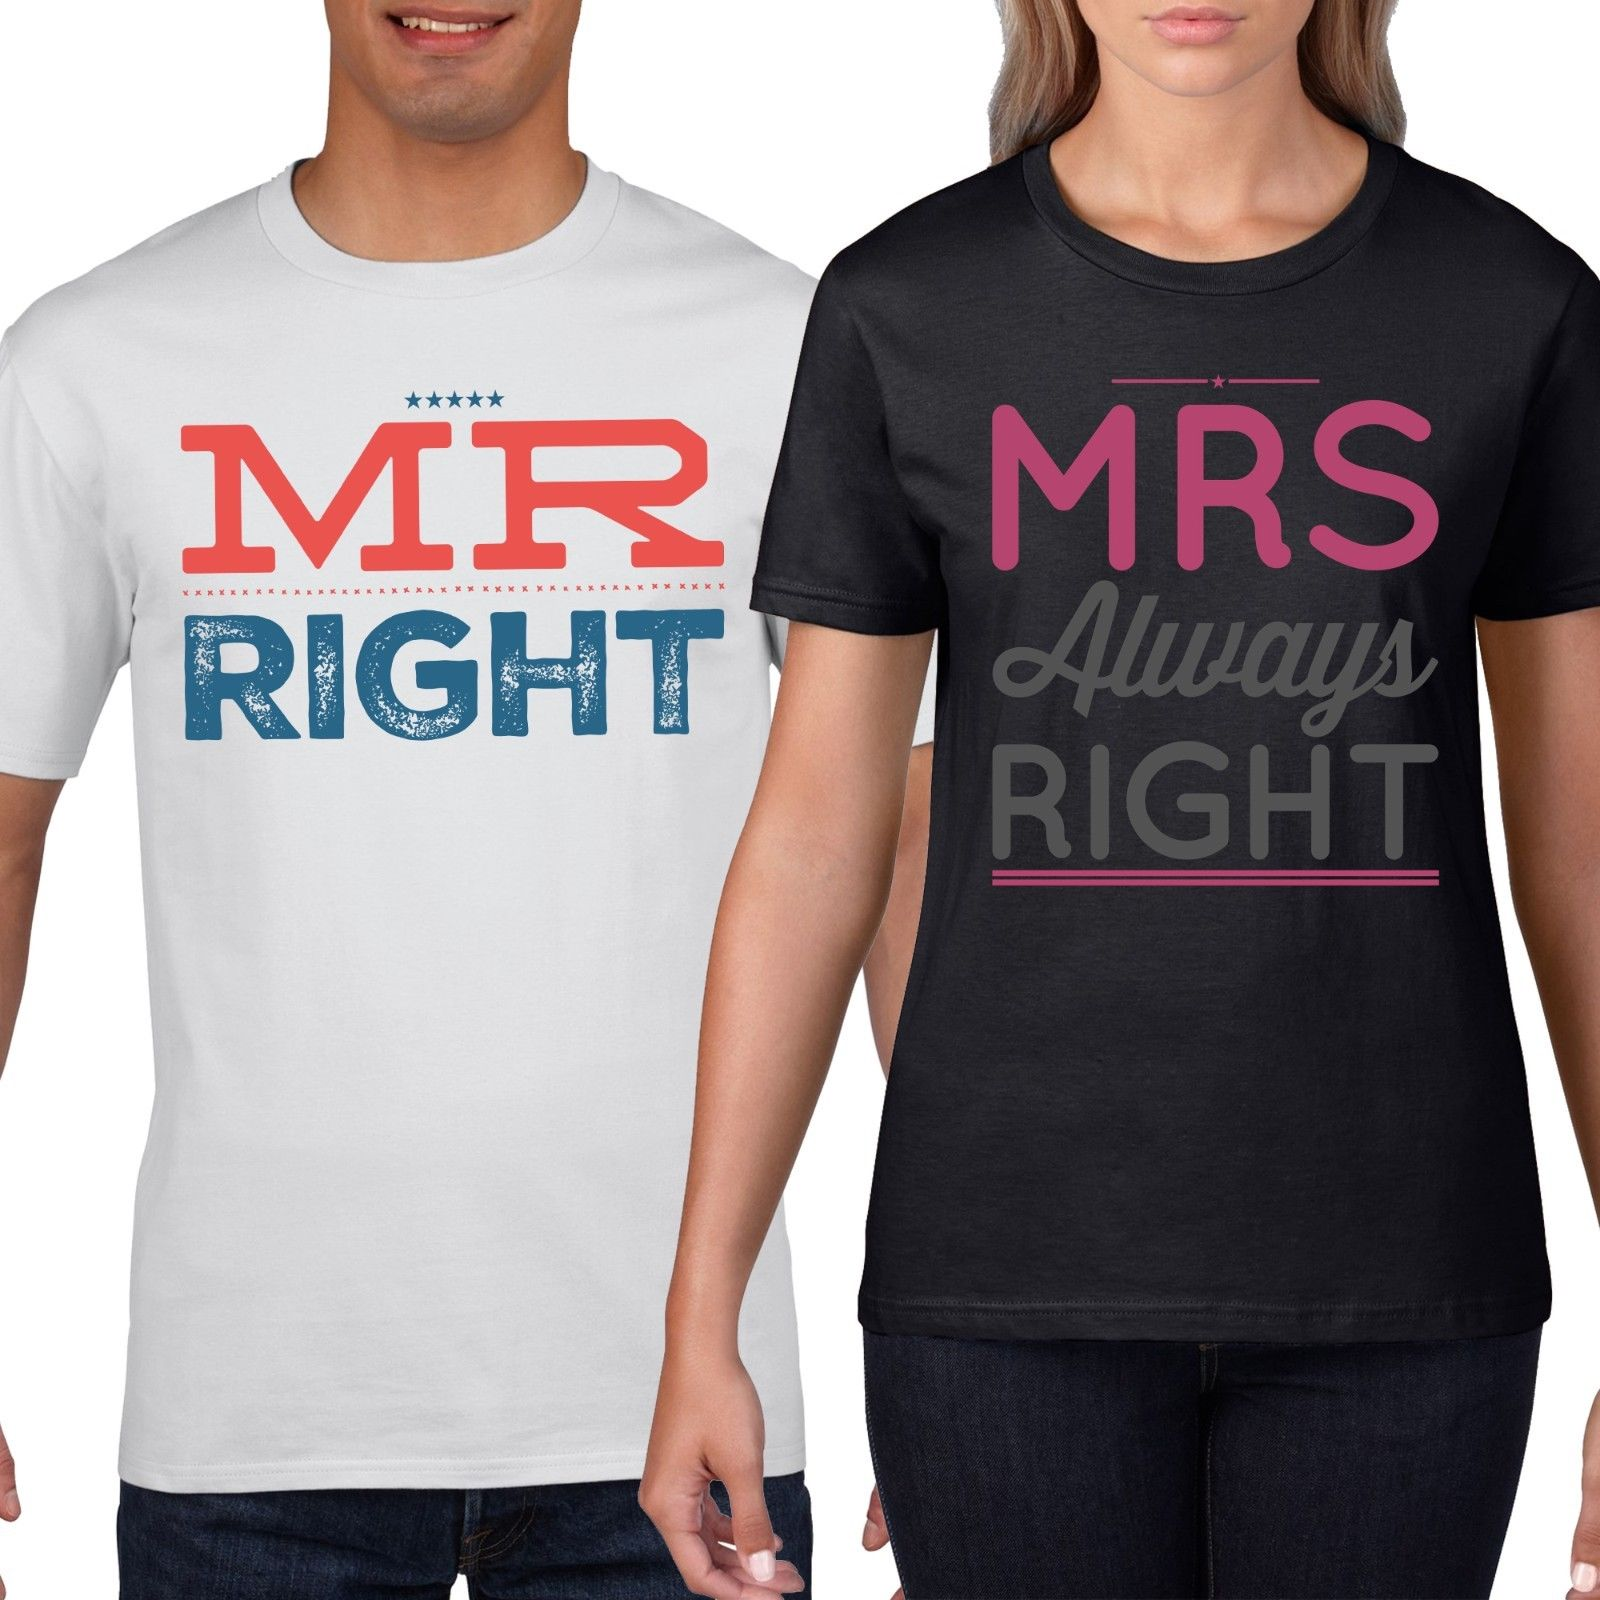 82c29922 Product image 1 Mr Right Mrs Always Couples T-Shirt Funny T Shirt Wedding  Honeymoon Shirts 849